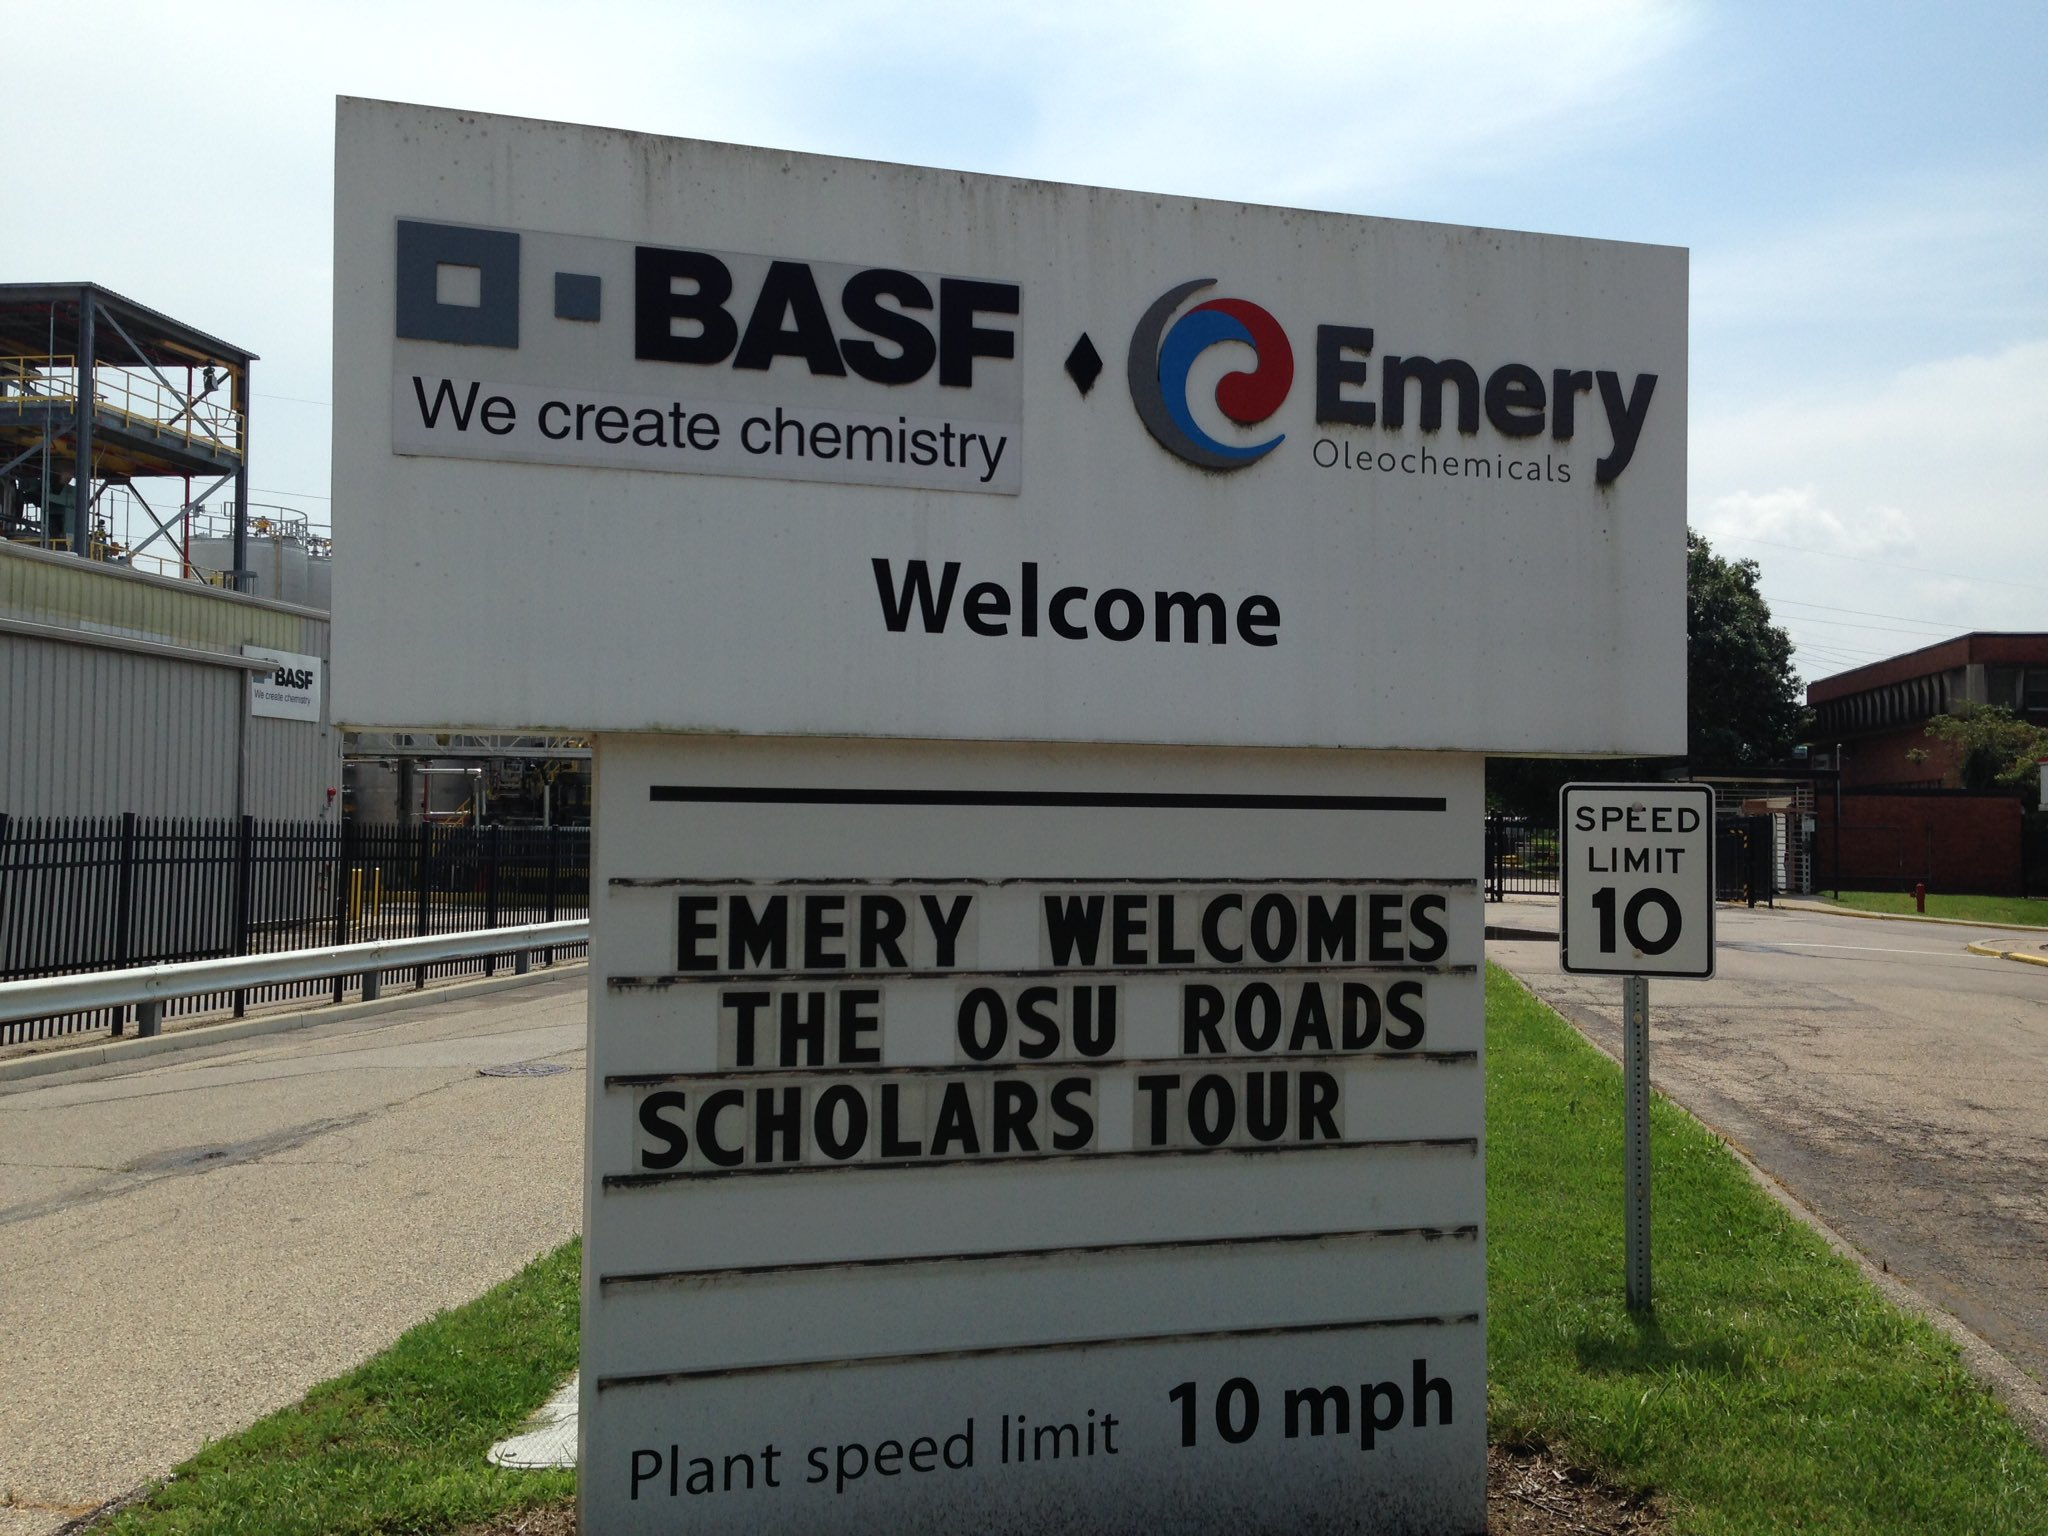 Thanks for the hospitality Emery Oleochemicals. We are happy to be here! #OSUontheroad https://t.co/SVmFUkGaOw